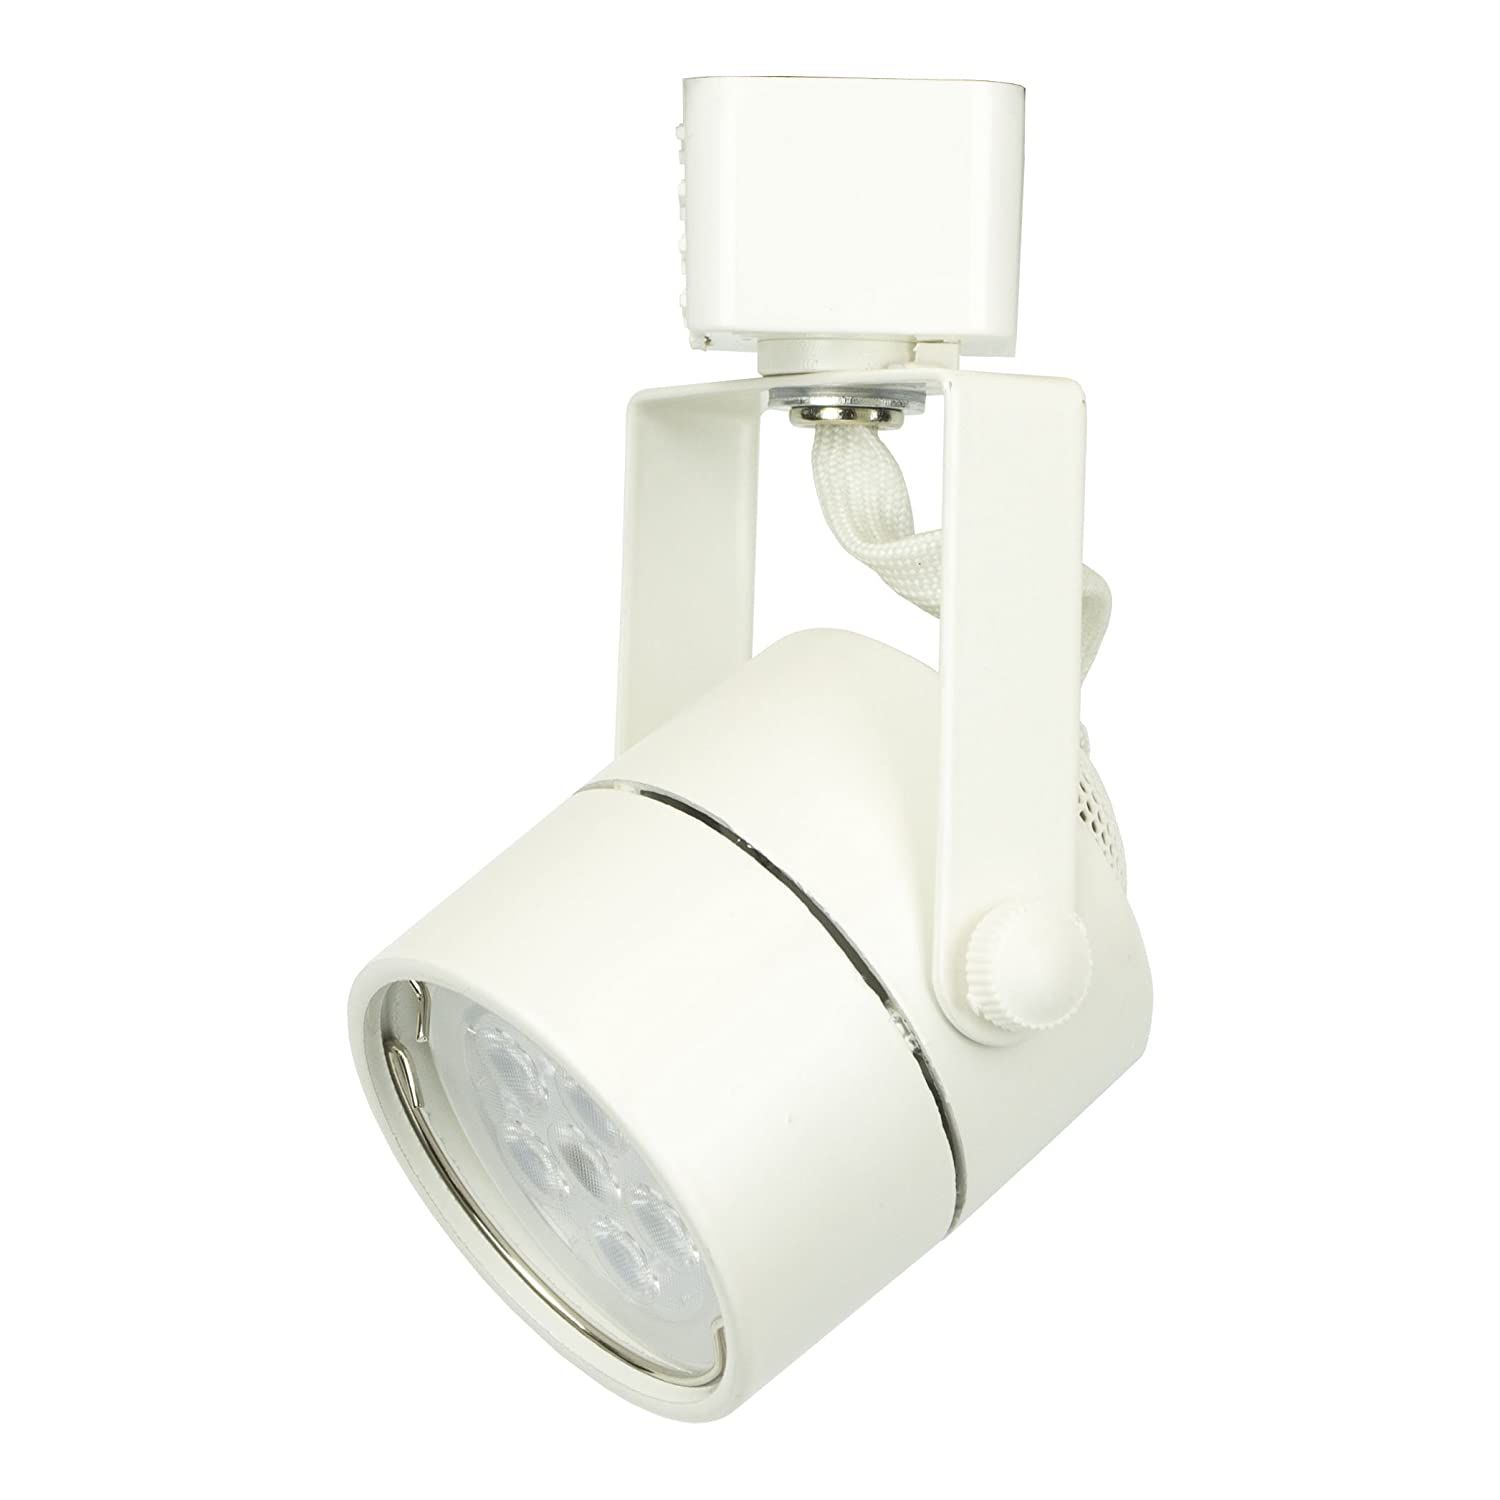 dd brand h system gu10 line voltage track lighting fixture white htc 9154 wh no bulb ambient track lighting